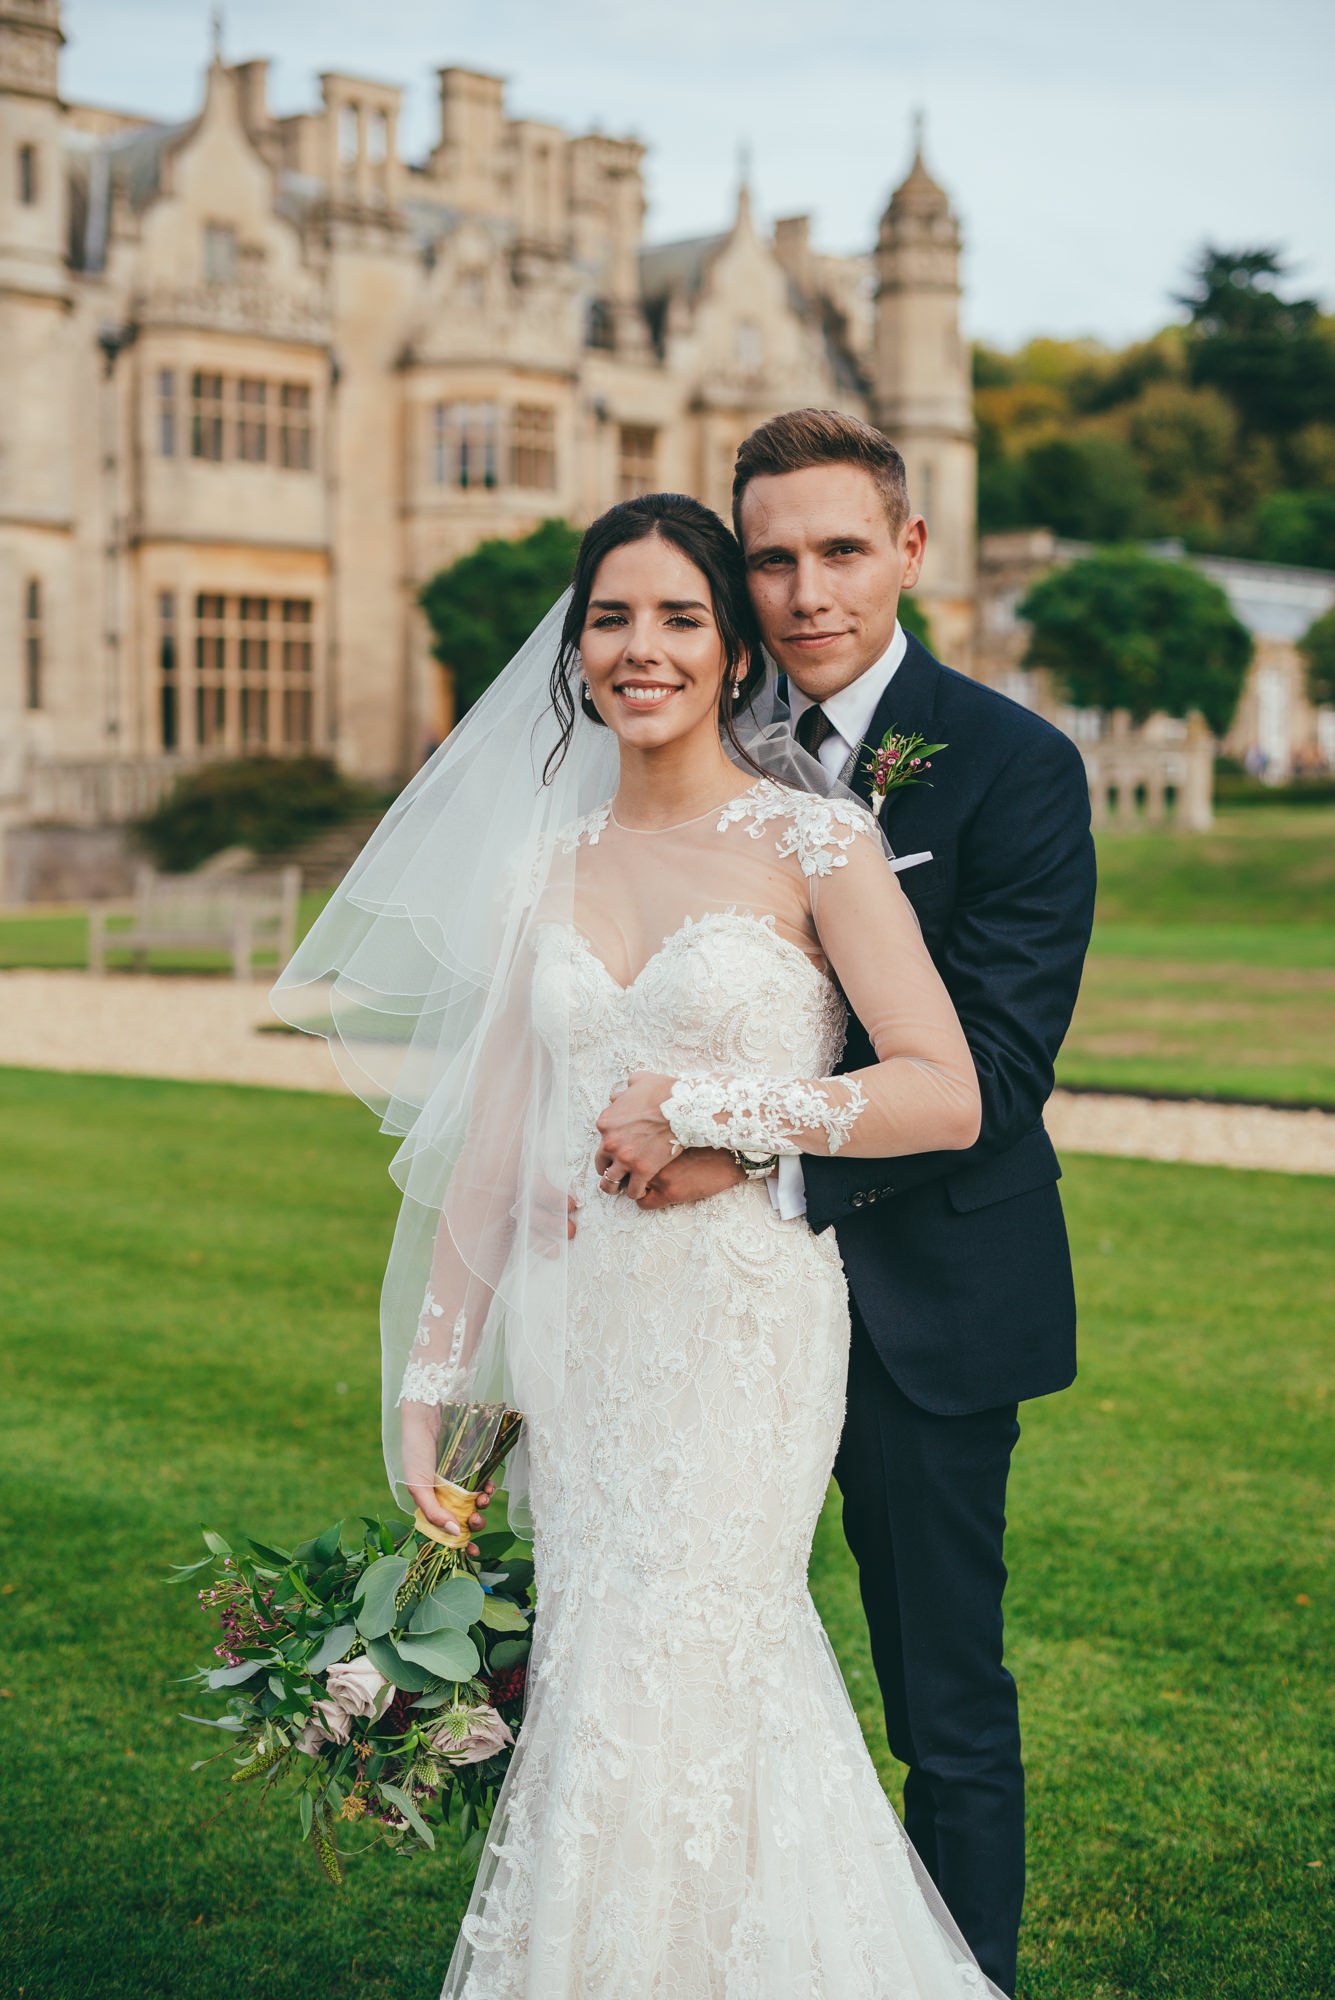 posed picture of the bride and groom at harlaxton manor